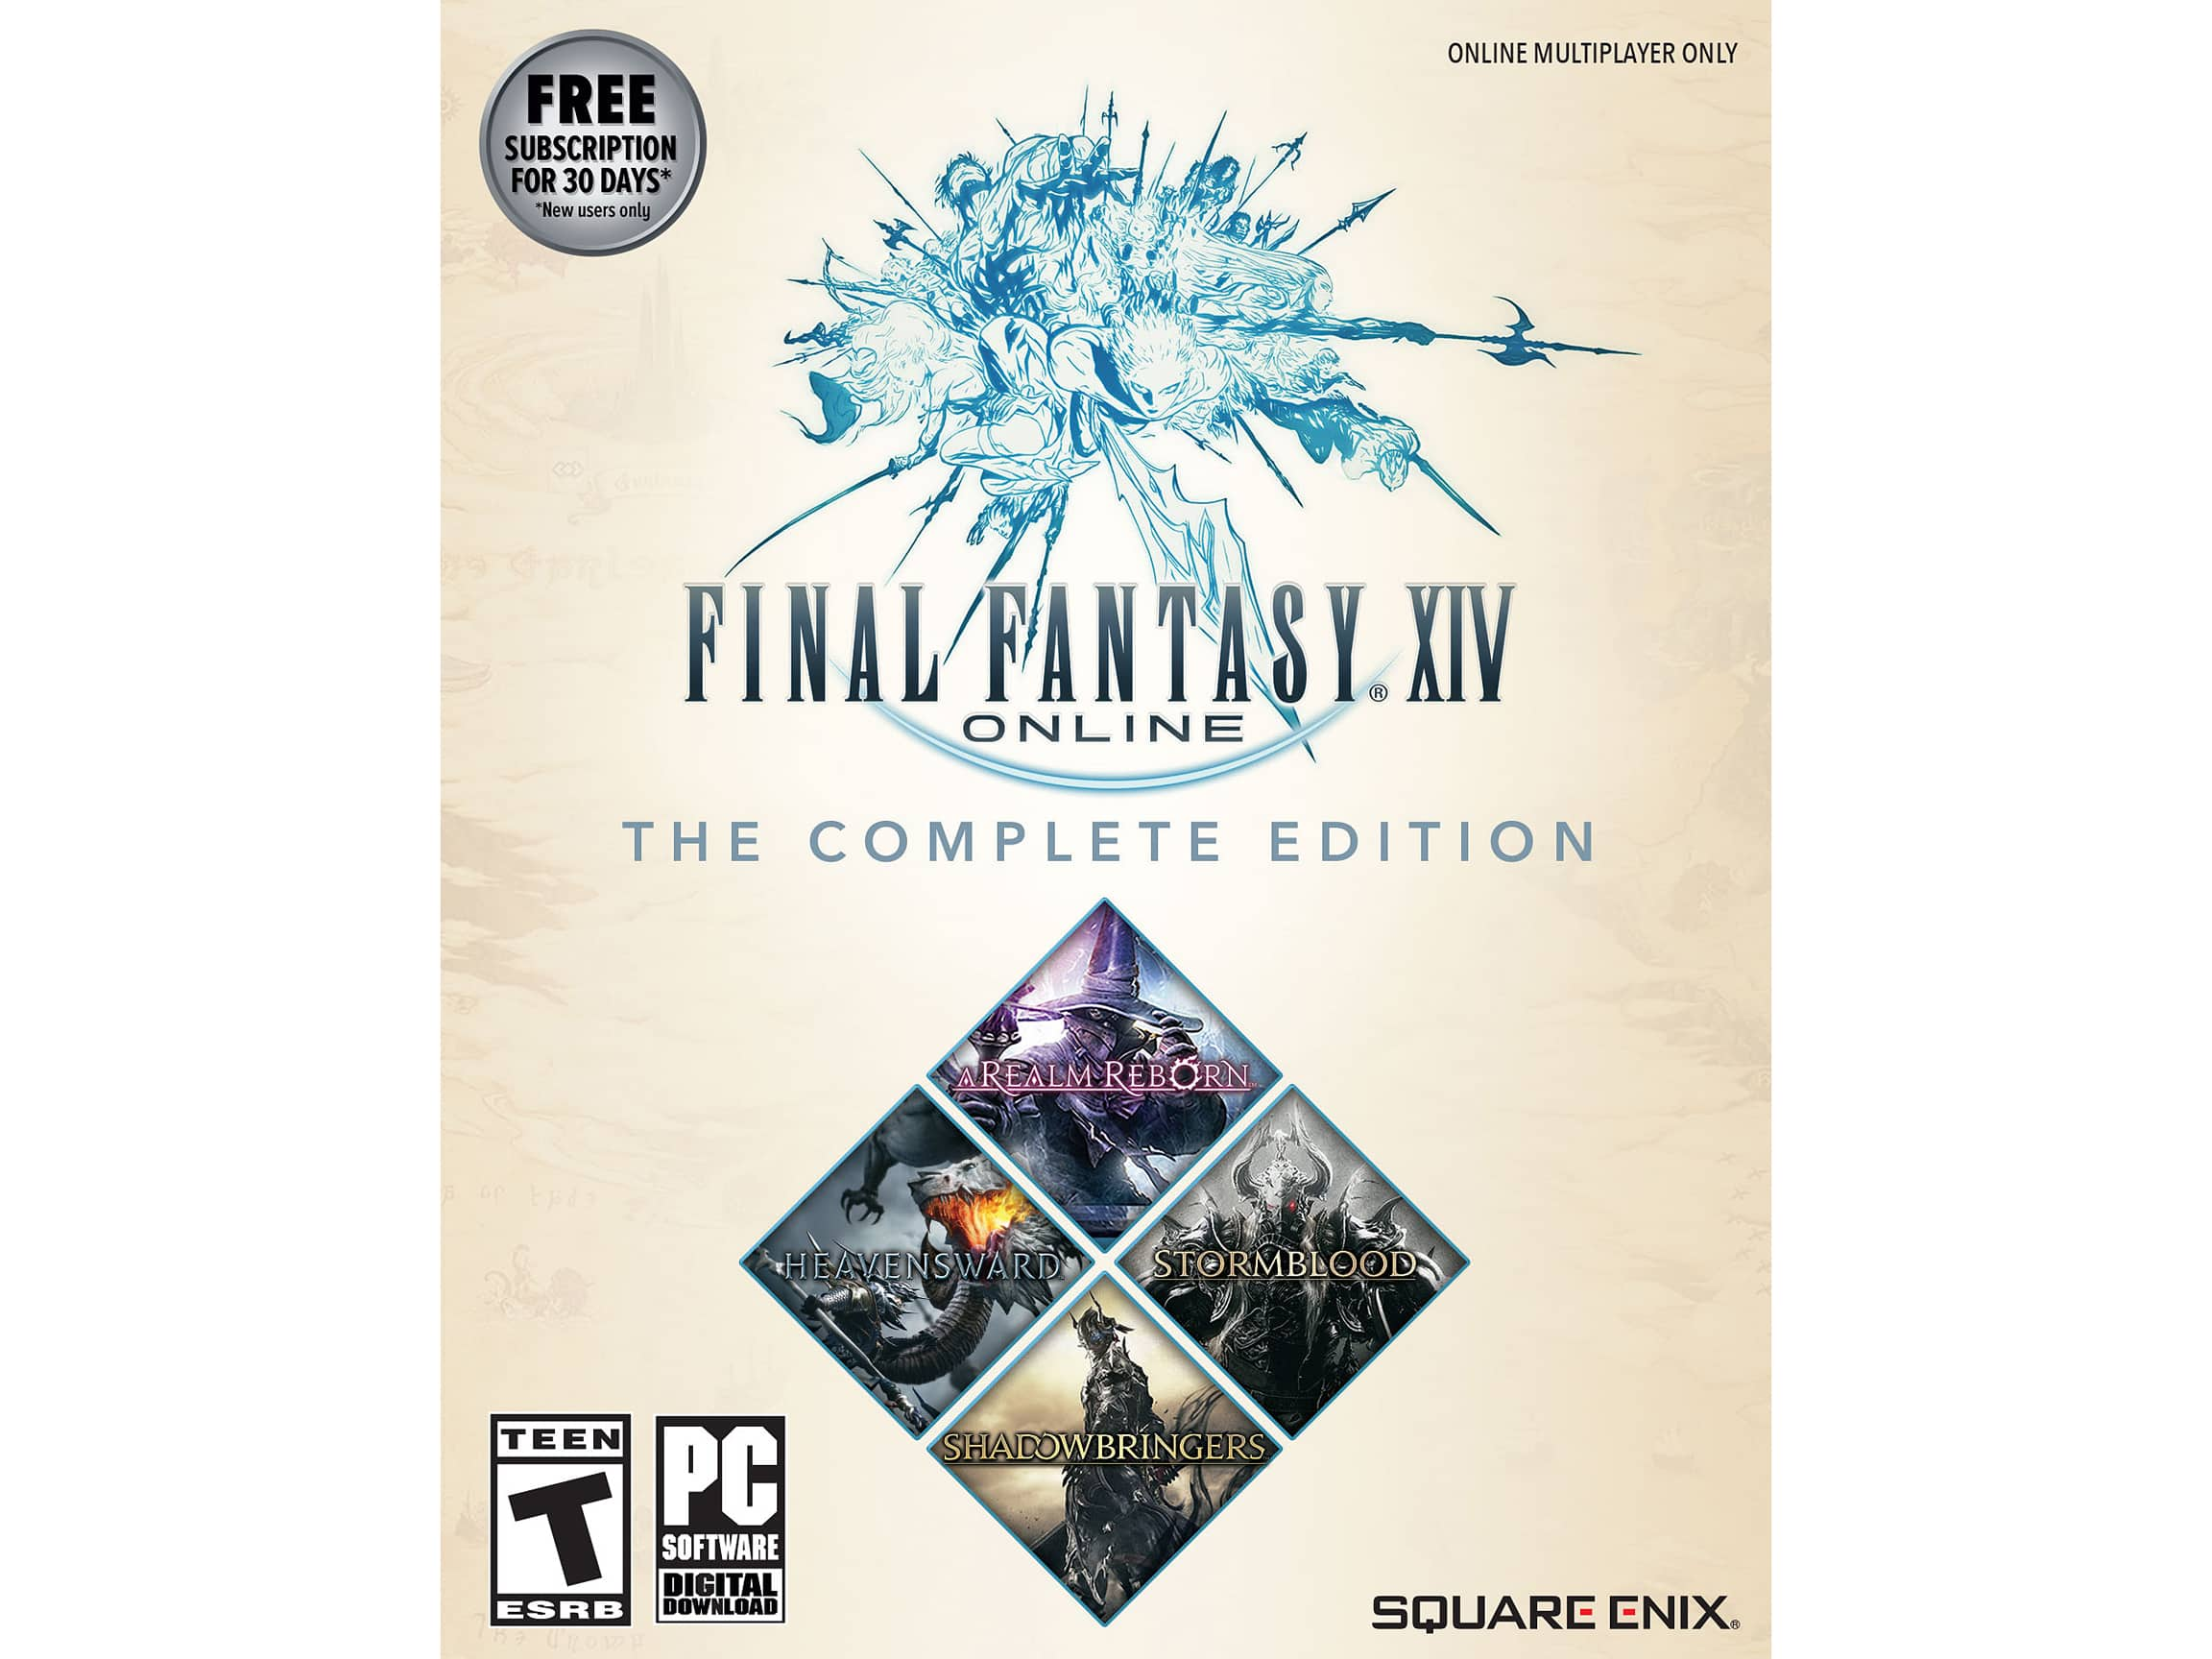 Final Fantasy XIV Complete Edition (2019 w/ Shadowbringers, PC or Mac Download) $44.99